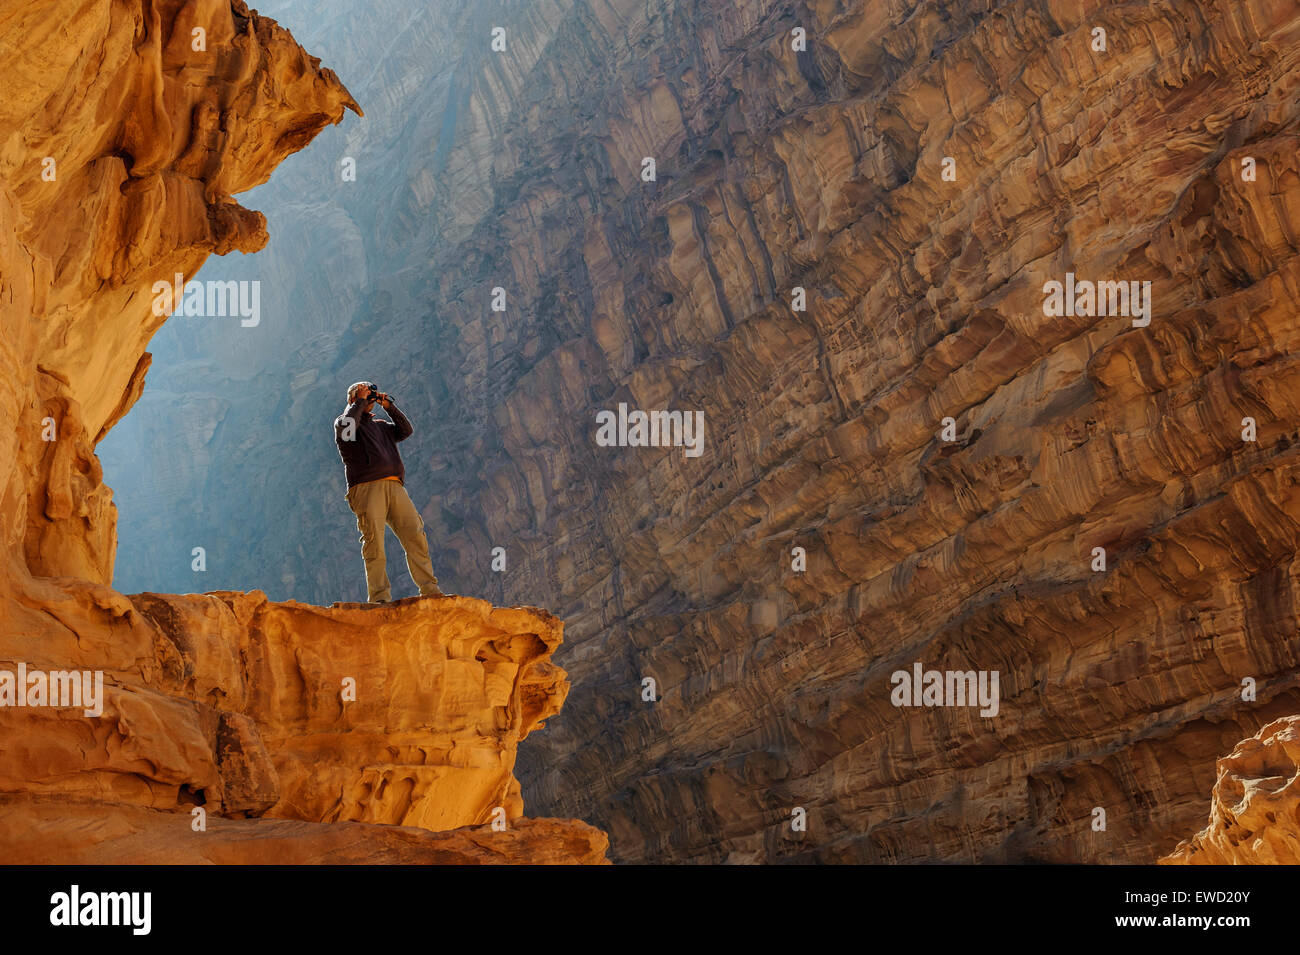 A local guide enjoys the view in Wadi Rum (The Valley Of The Moon), Jordan, Middle East - Stock Image